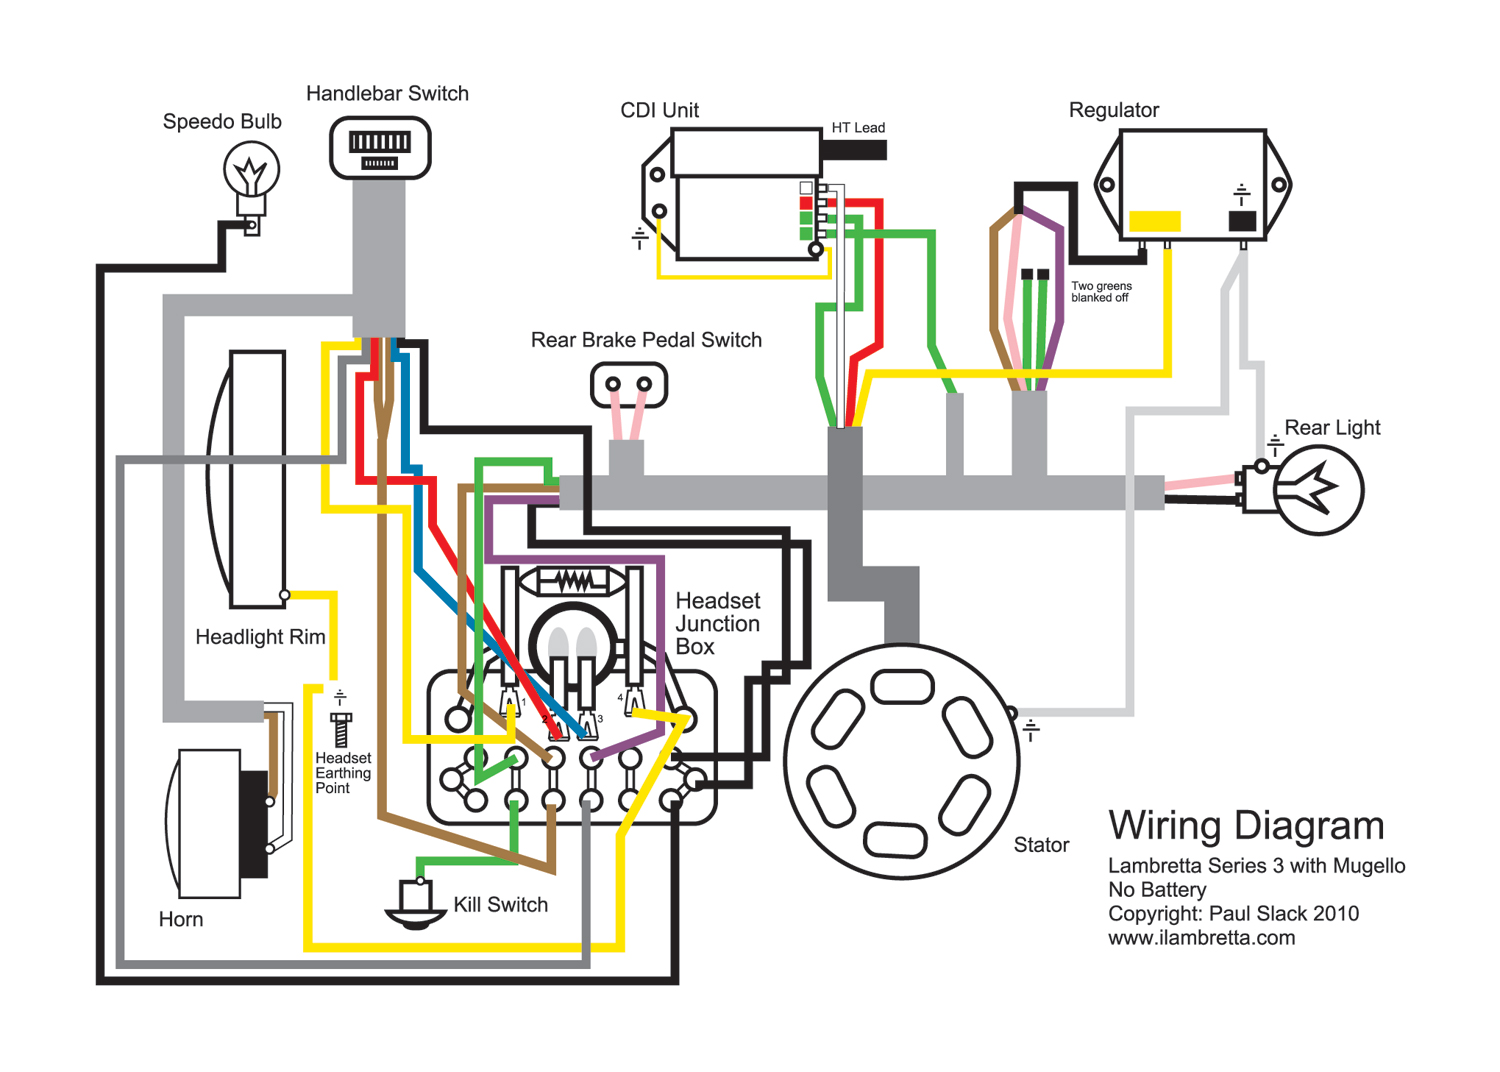 Li150 Wiring lambretta restoration the wiring loom lambretta 12v wiring diagram at bakdesigns.co